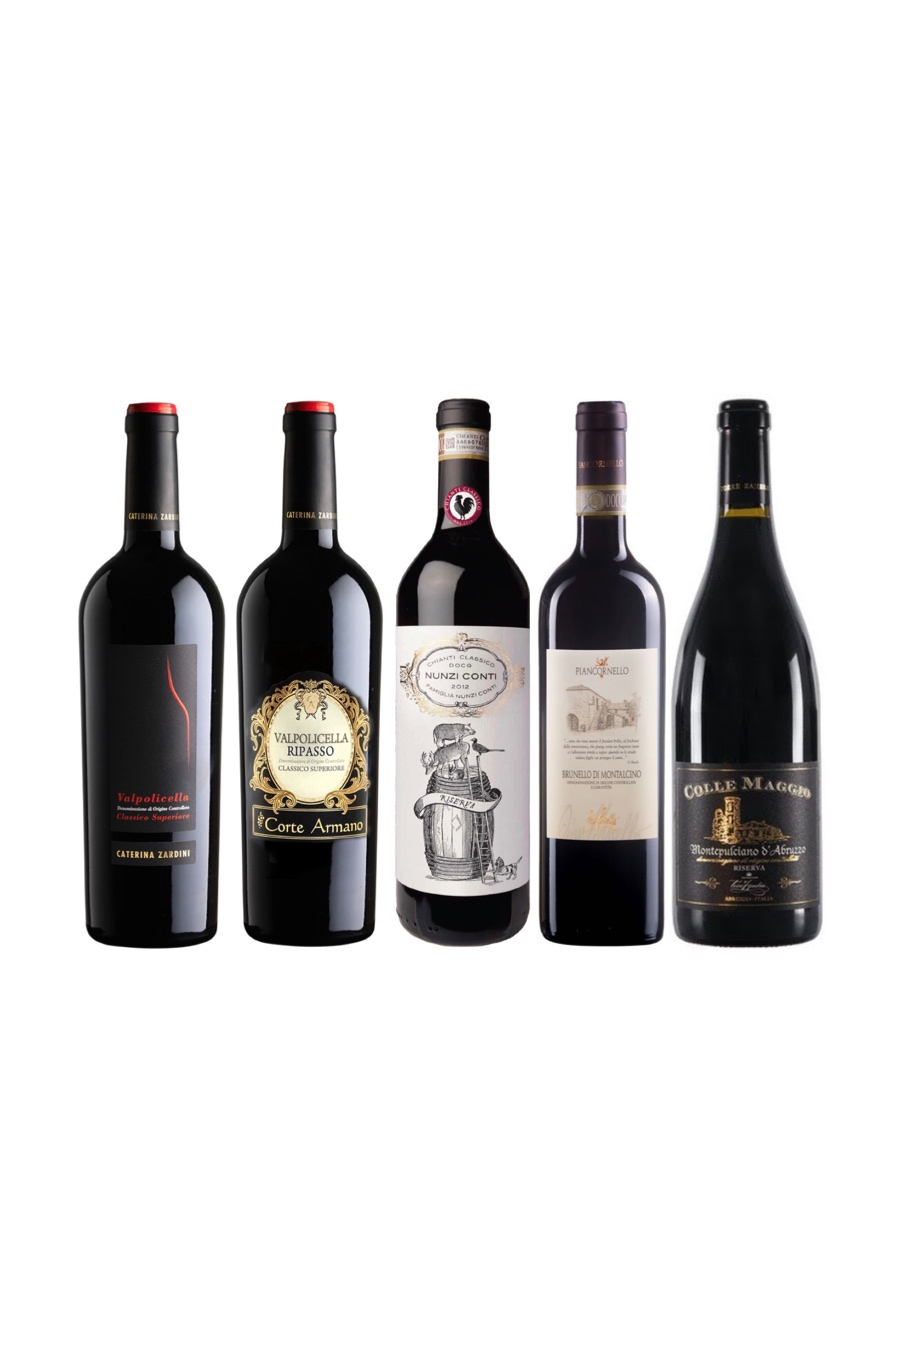 Pick any 4 Premium Italian Red Wine at only $248